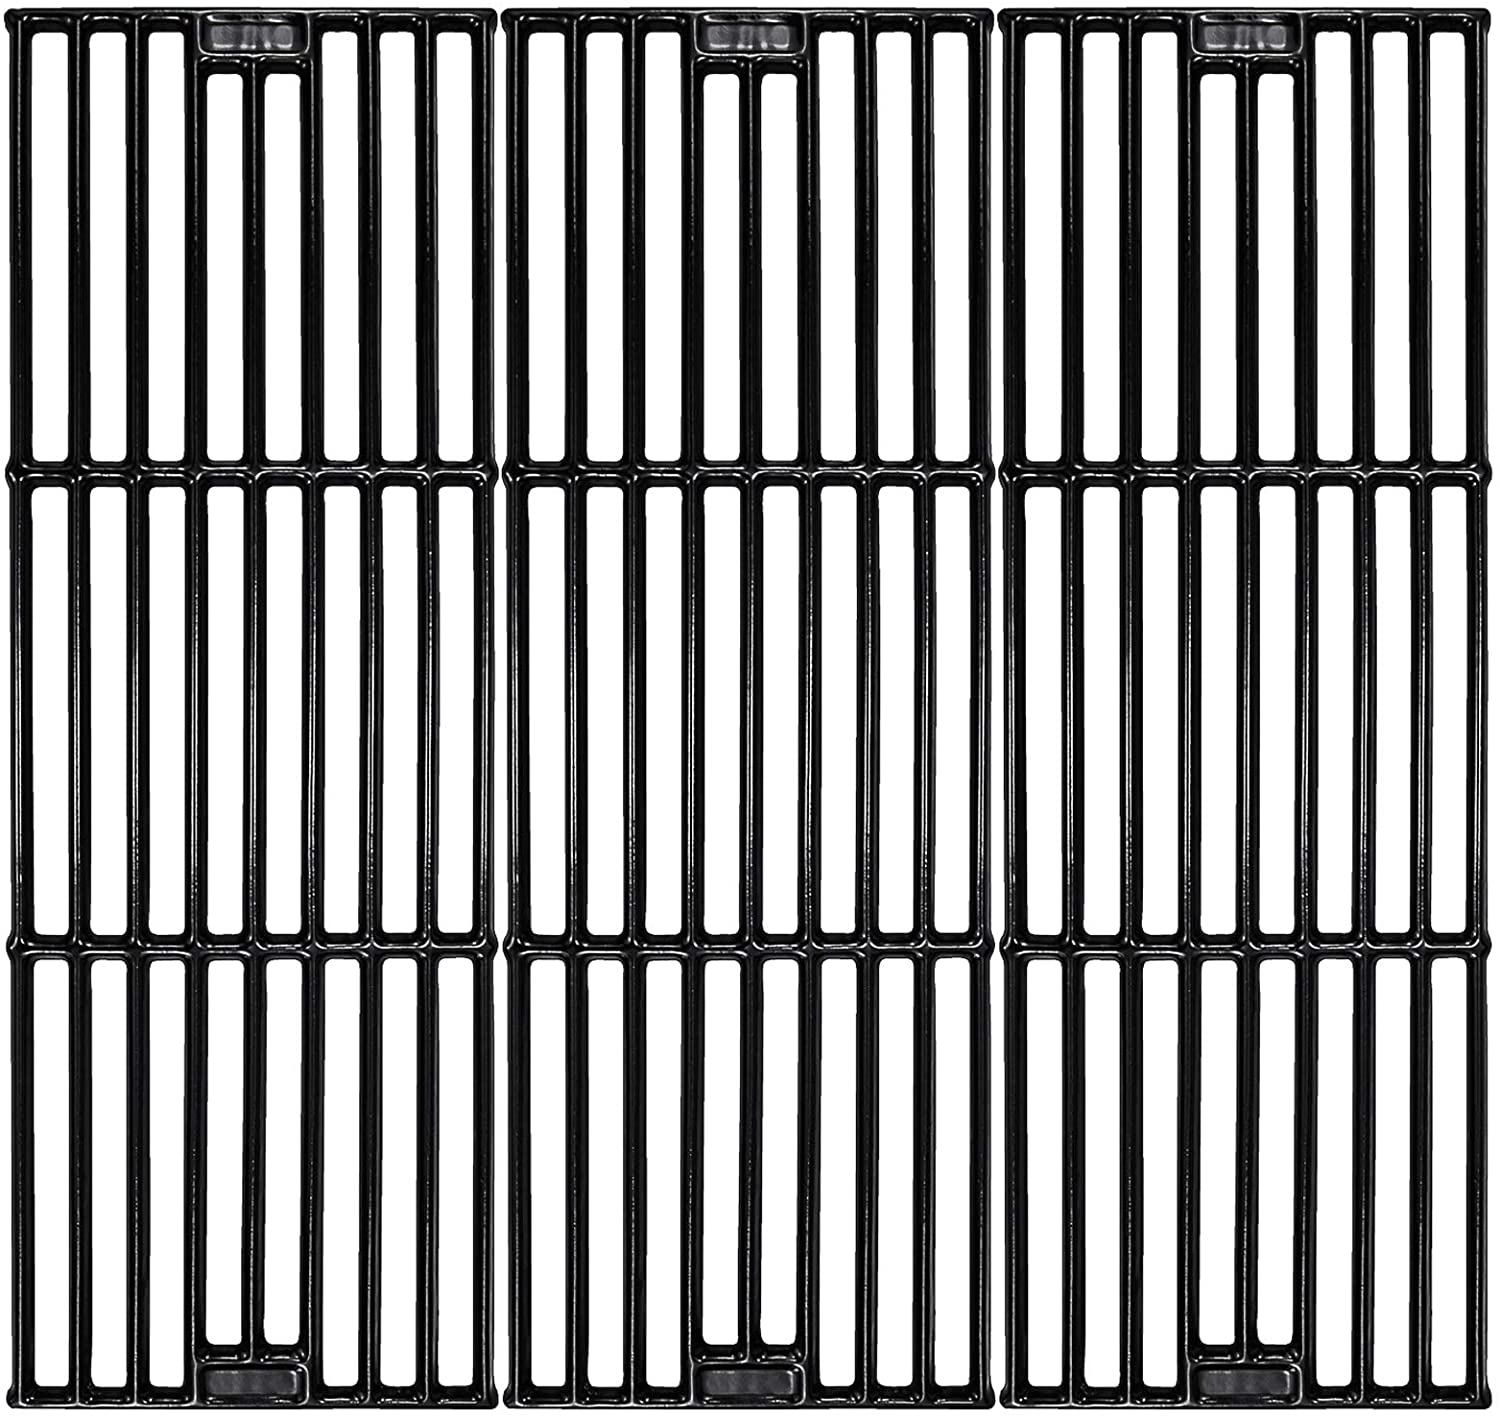 """Hisencn Porcelain Coated Cast Iron Cooking Grates Replacement for Chargriller 2121, 2123, 2222, 2828, 3001, 3030, 3725, 4000, 5050, 5252, Set of 3, 19 3/4"""" Char griller Duo 5050 Grids : Garden & Outdoor"""